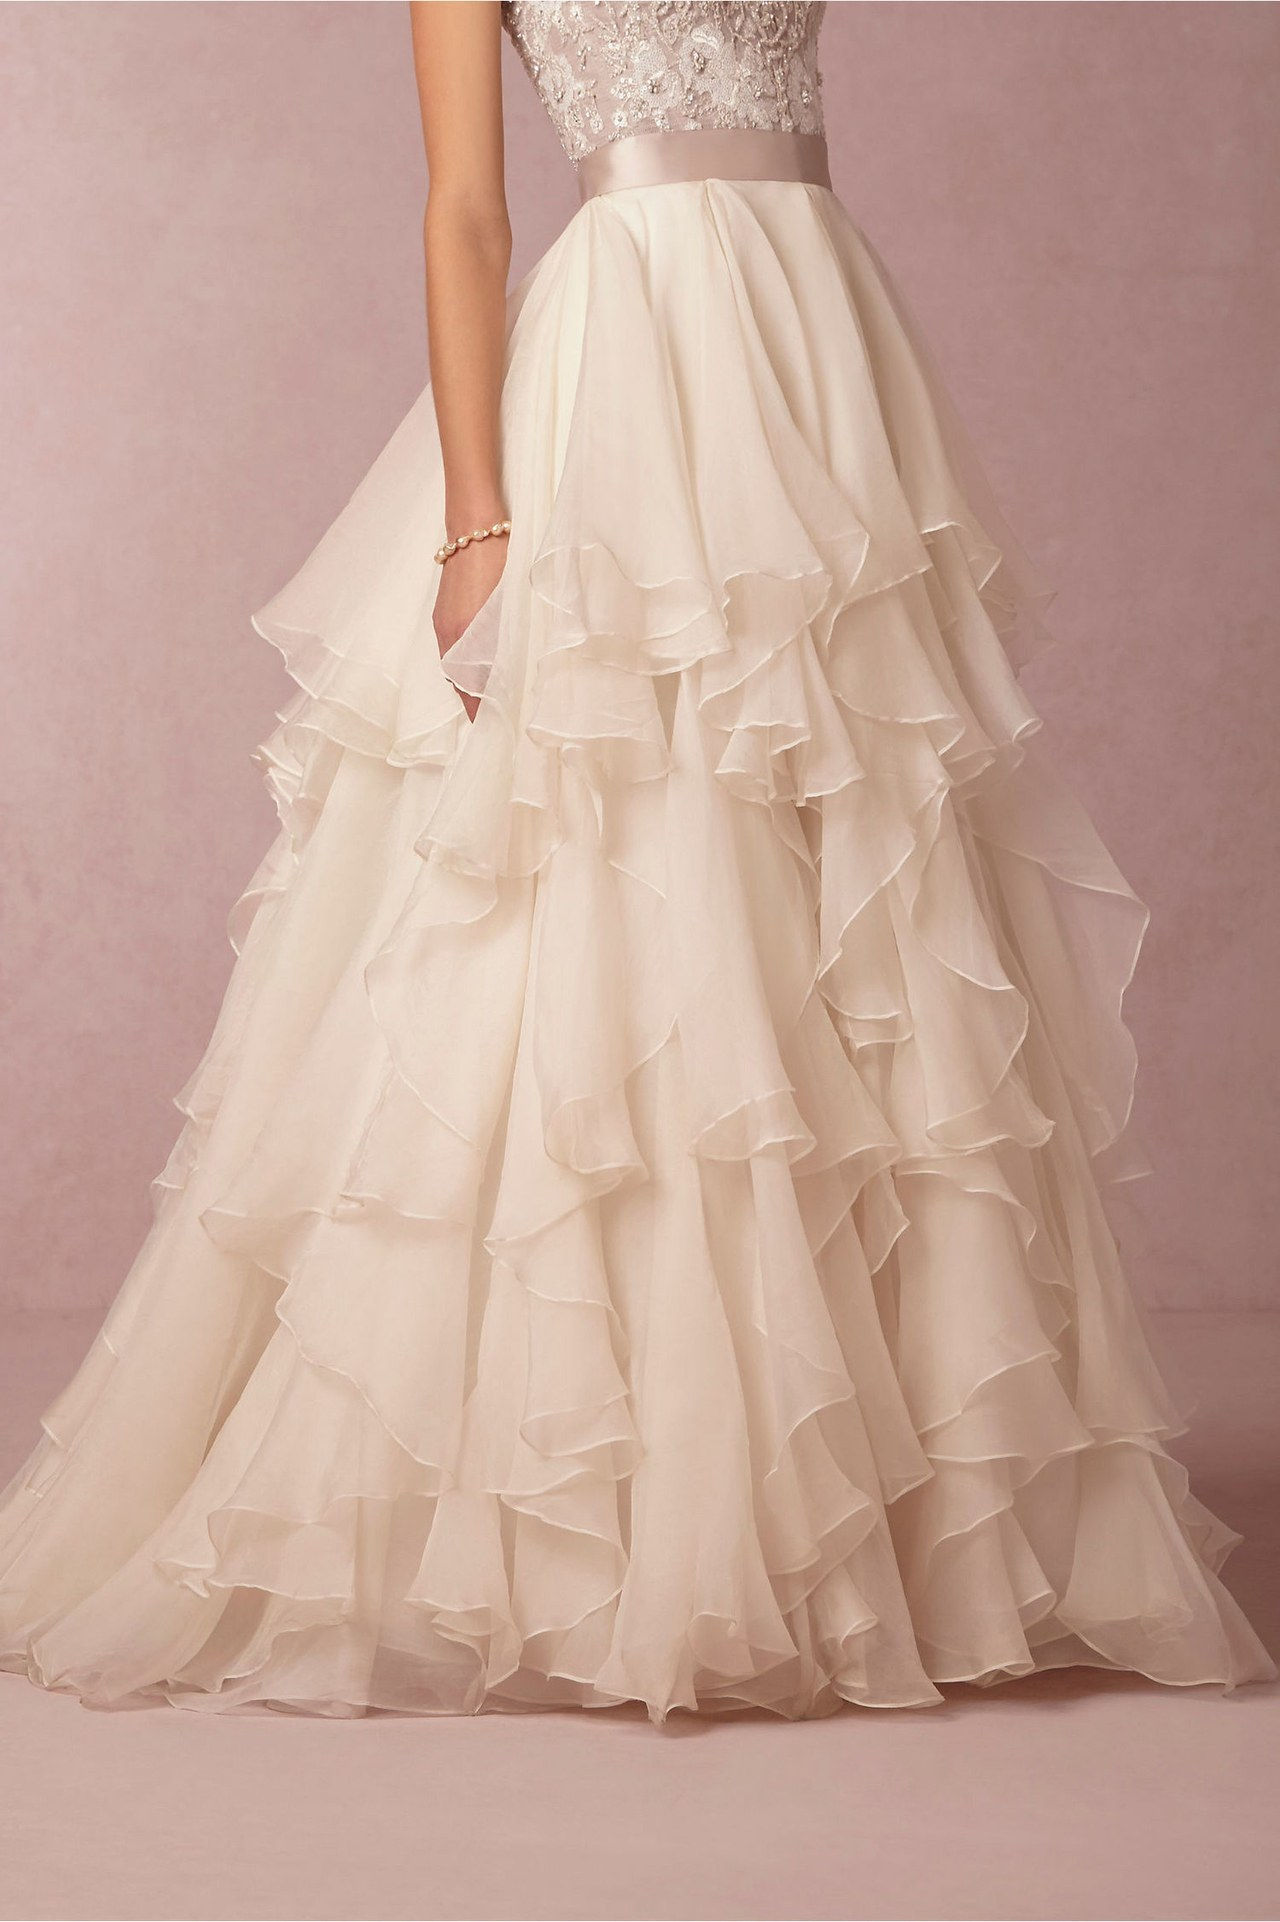 4b 2 in 1 wedding dresses wedding gowns mix and match wedding dresses bhldn 0430 courtesy